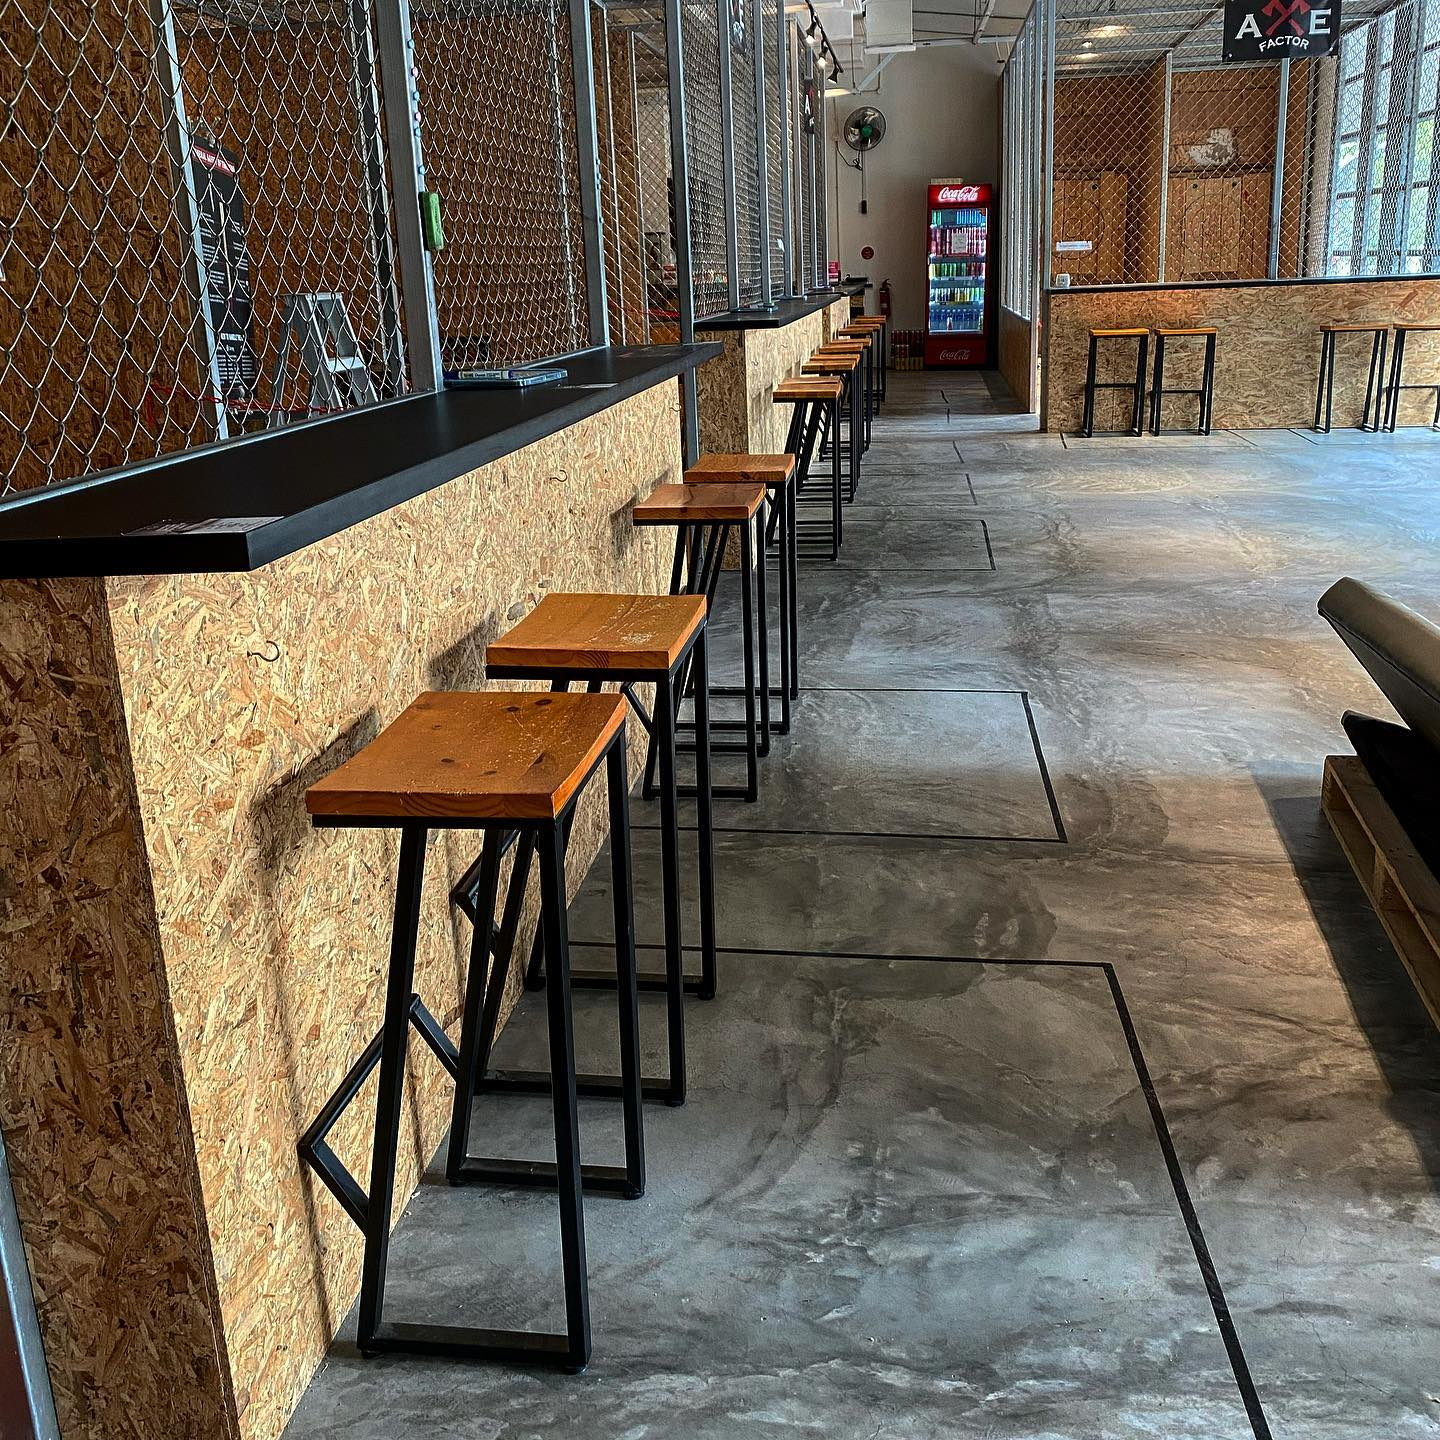 1 Hour Axe Throwing for 4 pax + 4 x $3 Drink Voucher